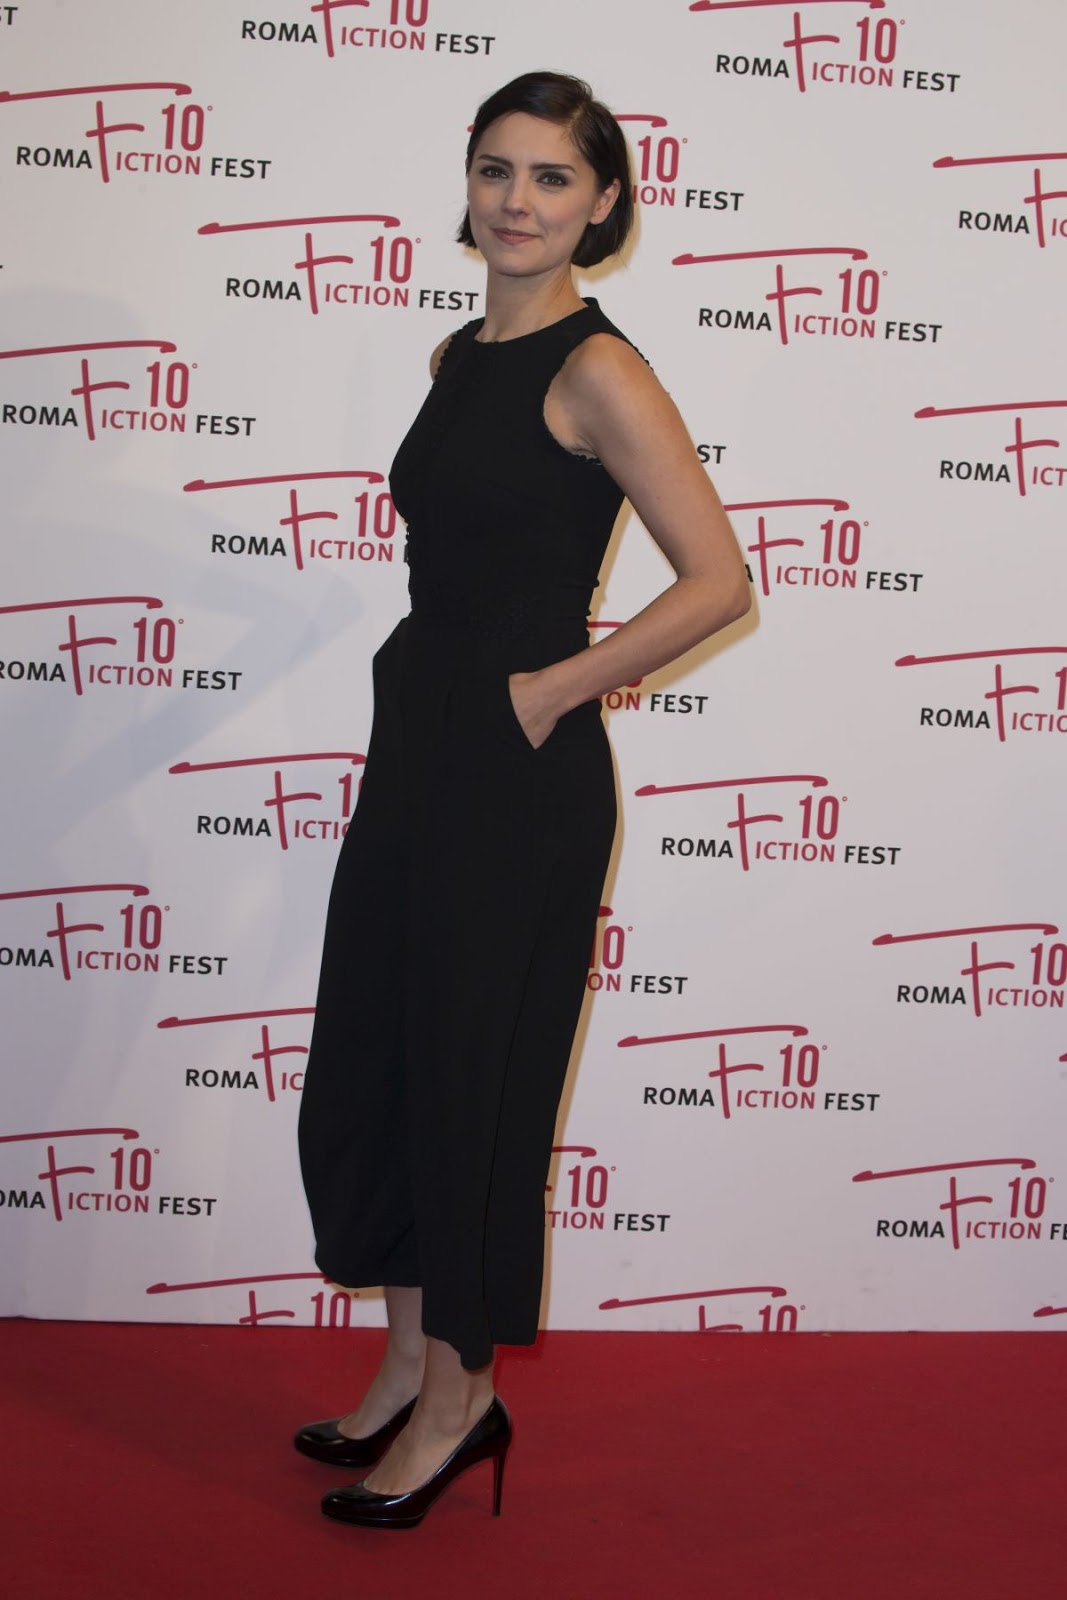 Annabel Scholey Medici annabel scholey || 'medici' premiere at roma fiction fest